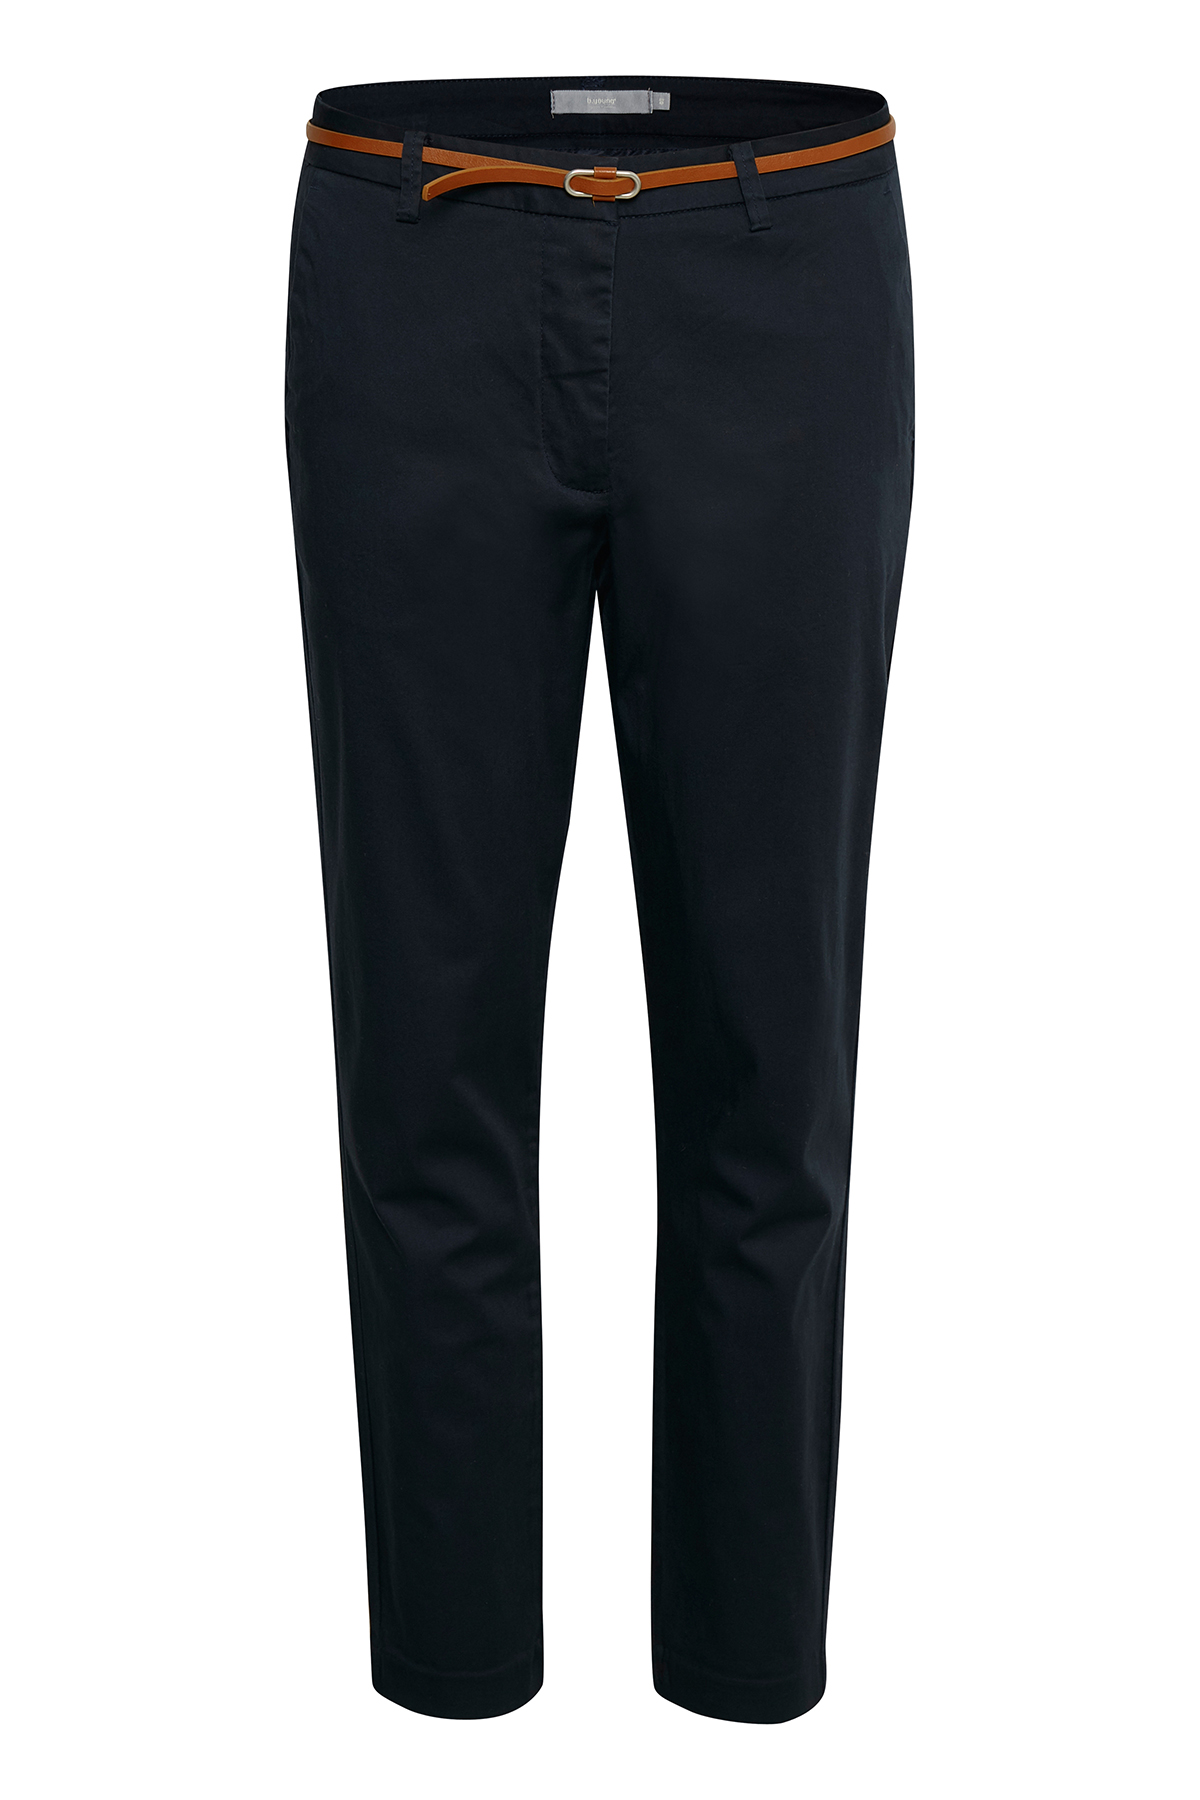 Copenhagen Night Pants Suiting von b.young – Kaufen Sie Copenhagen Night Pants Suiting aus Größe 34-46 hier